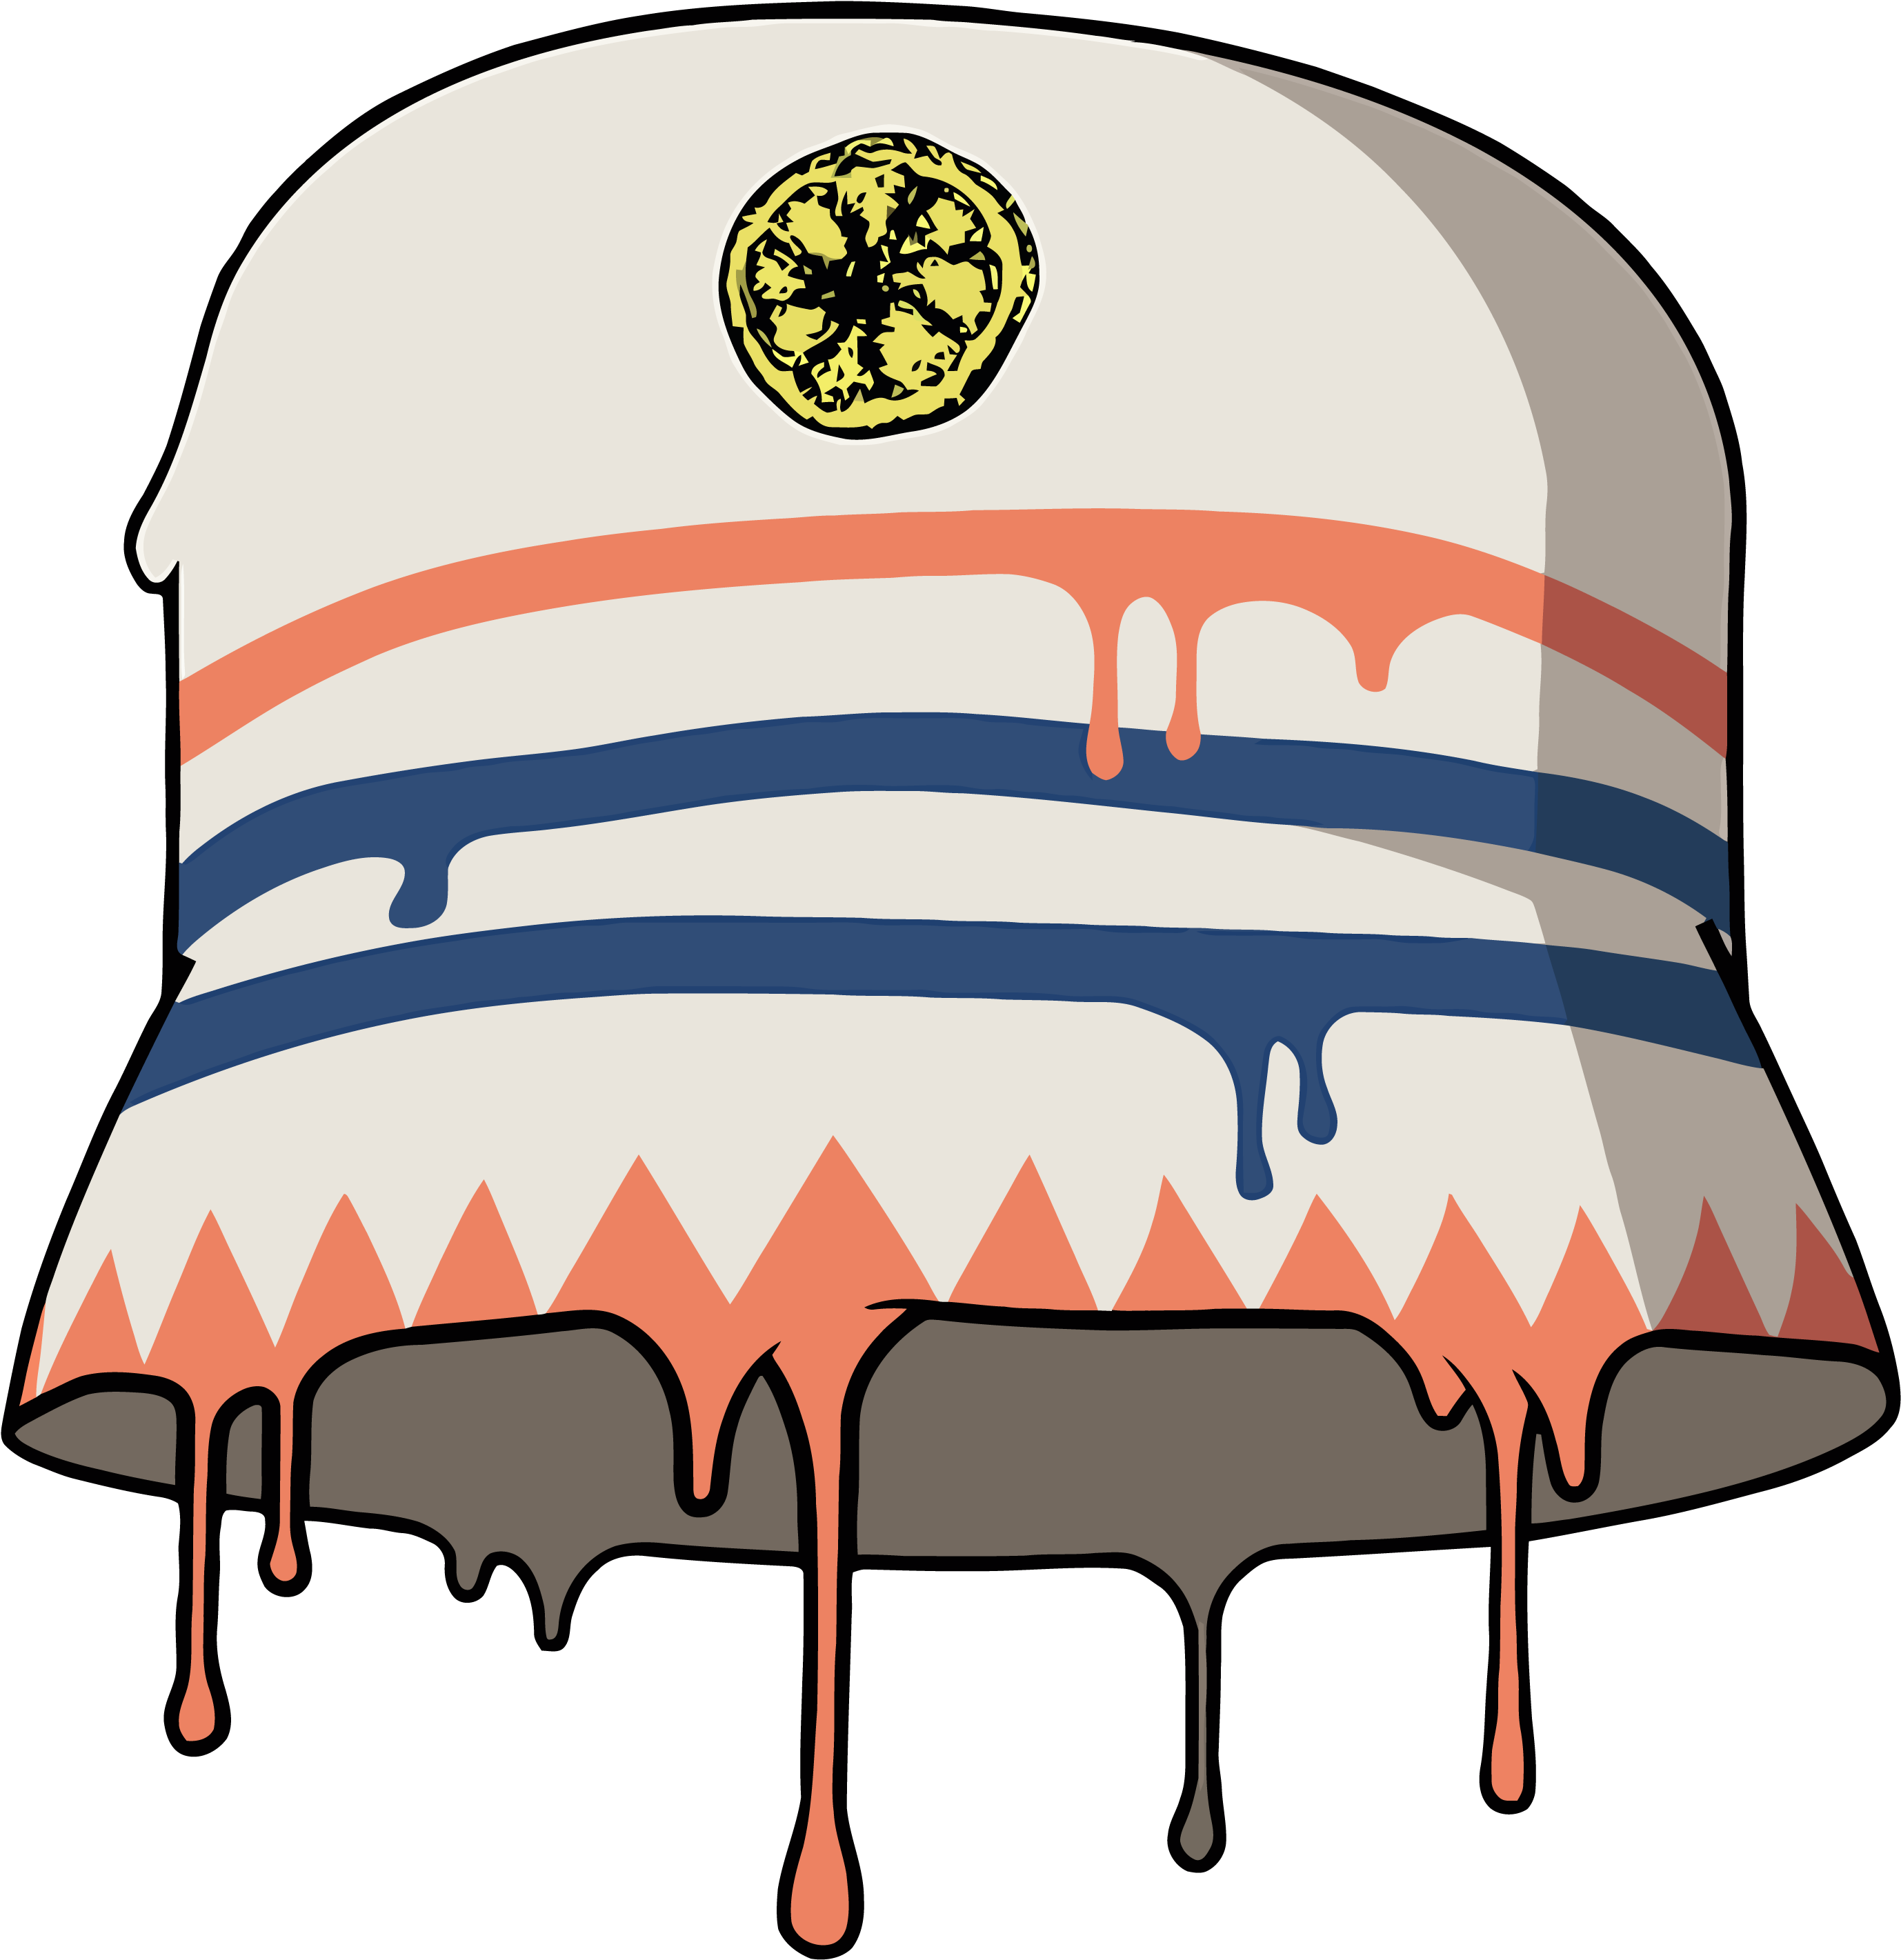 The Stone Roses Reni Dripping Paint Bucket Hat Design Clipart Full Size Clipart 2713687 Pinclipart